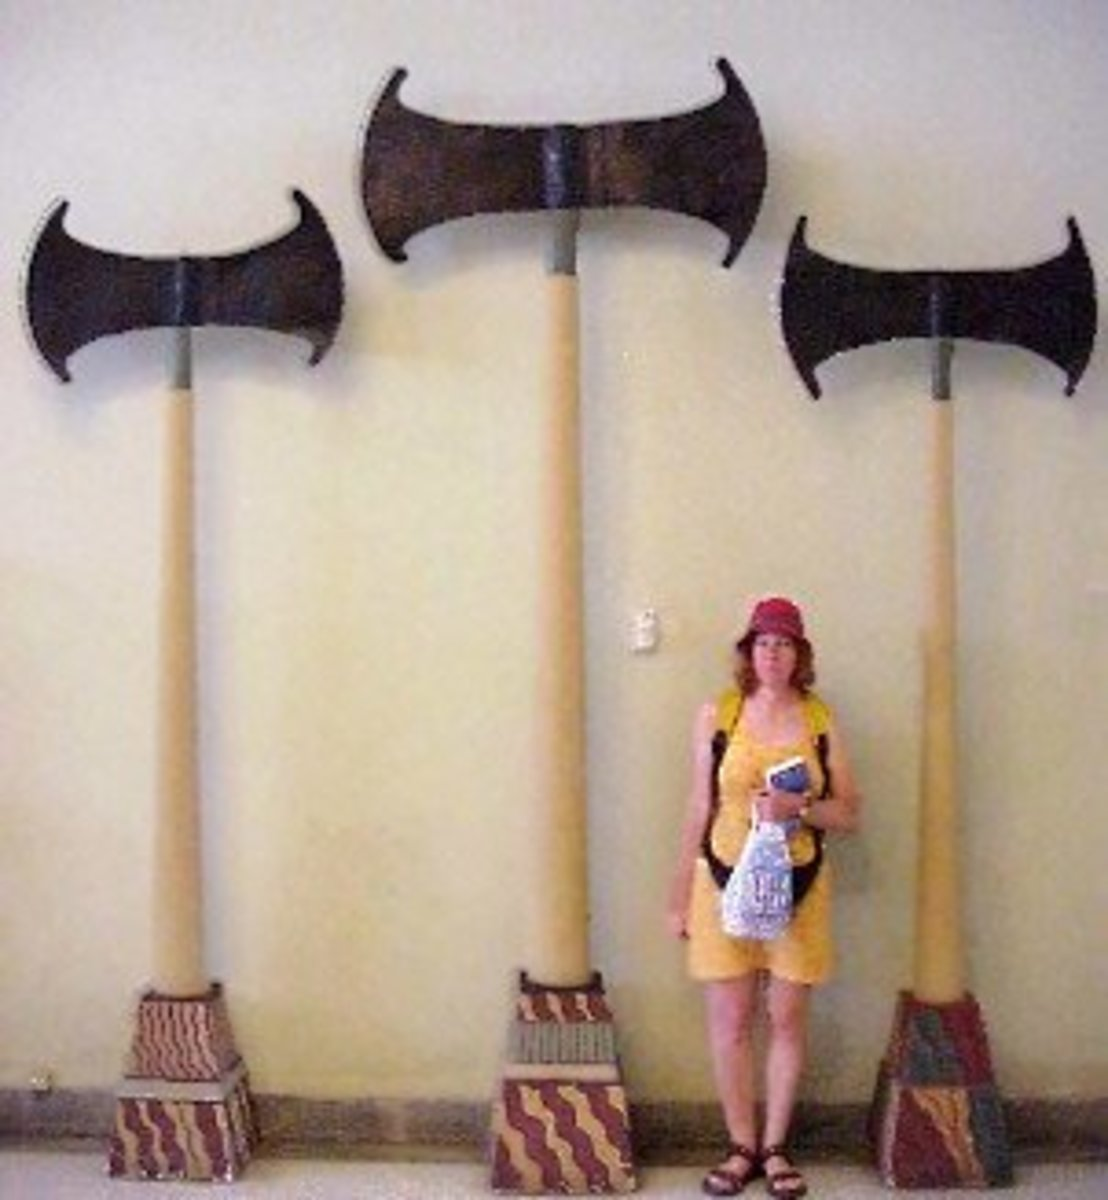 Giant Axes found in Sumer